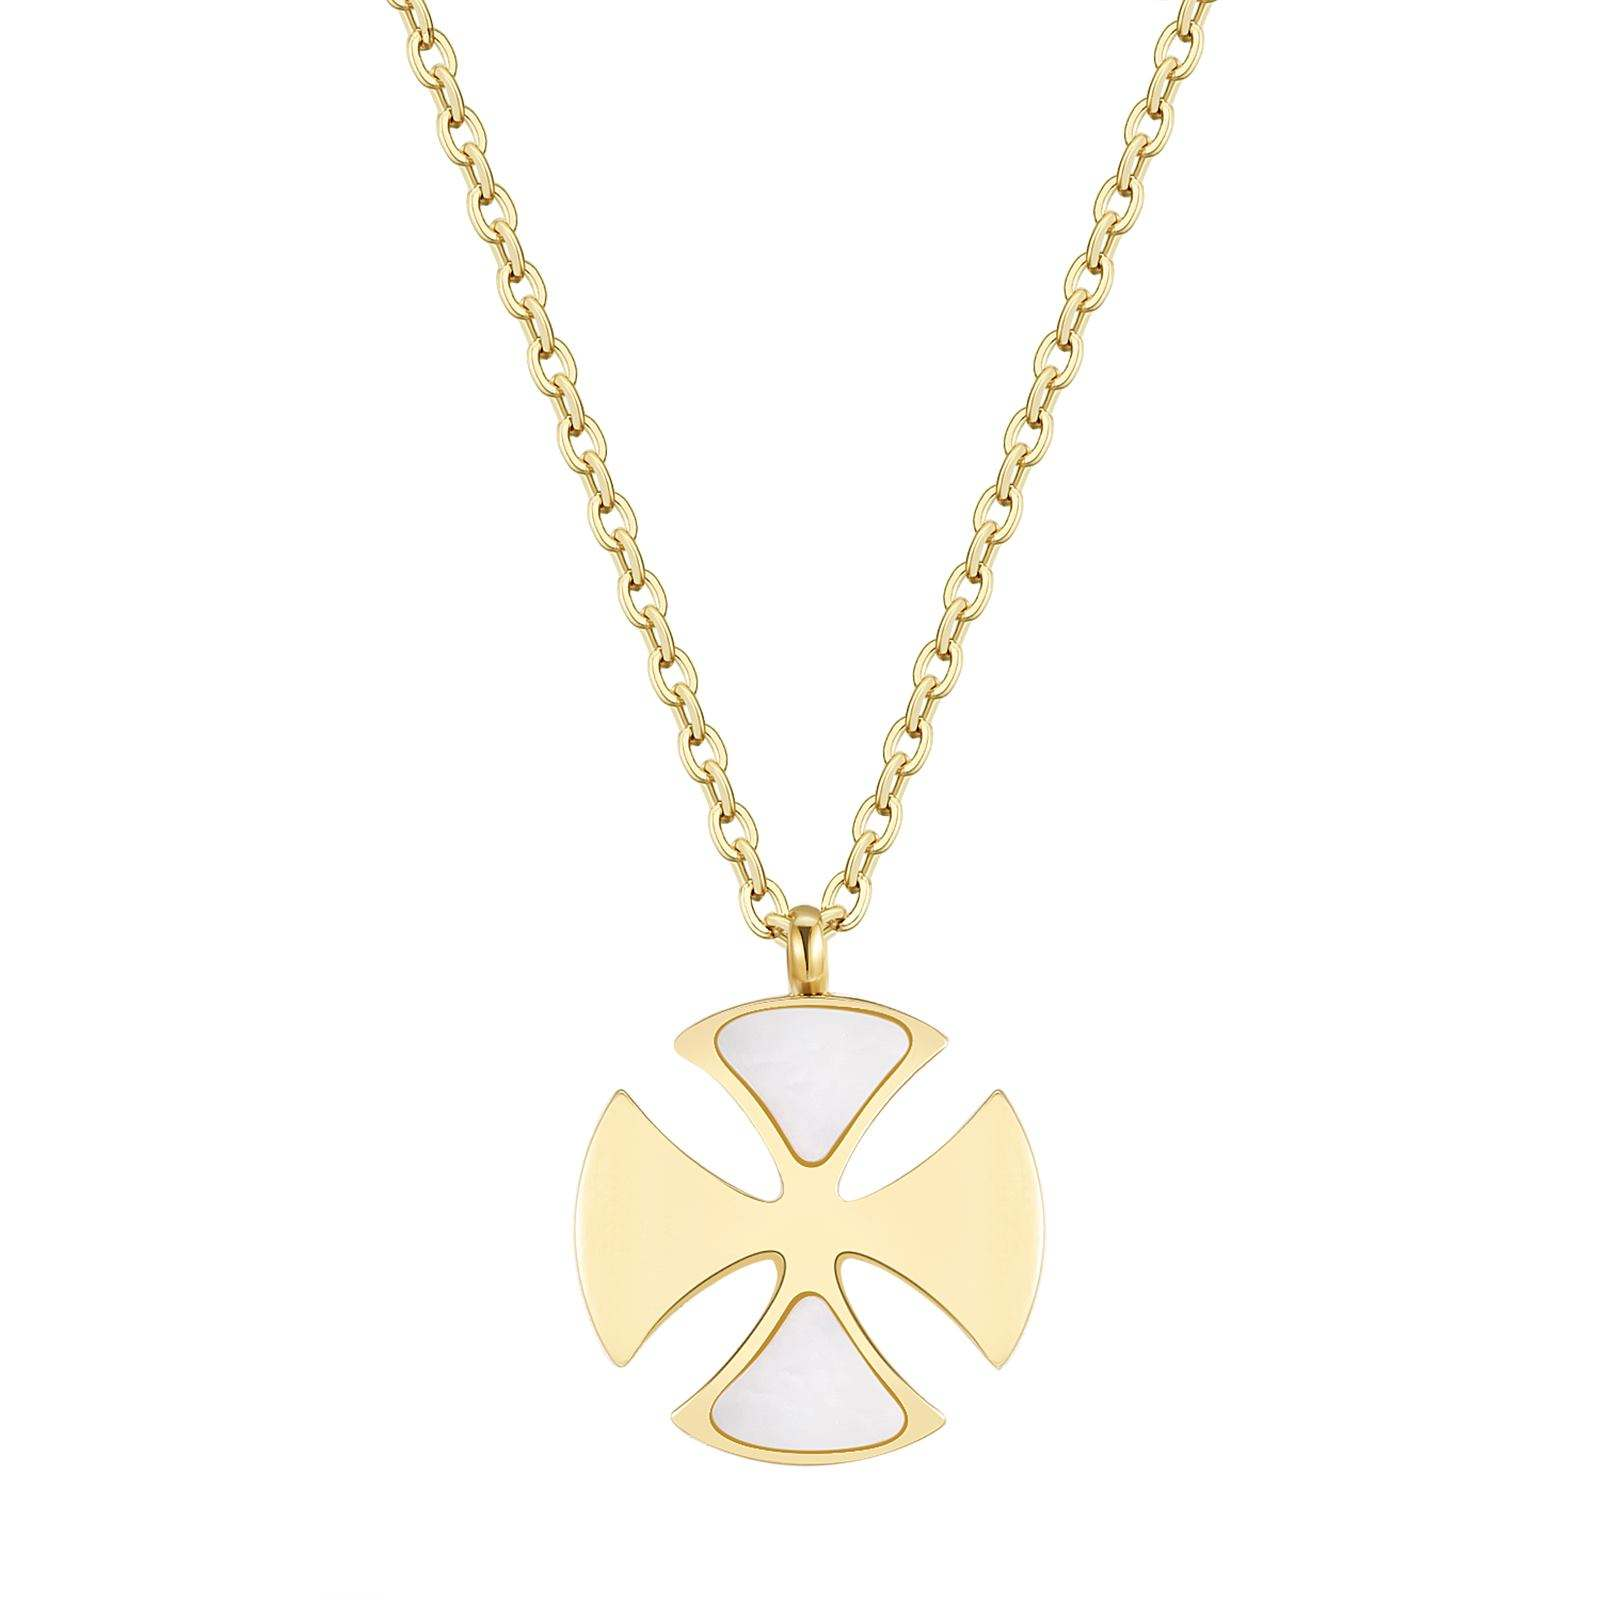 Hot selling simple clover Pendant Necklace Stainless Steel gold plated necklace jewelry